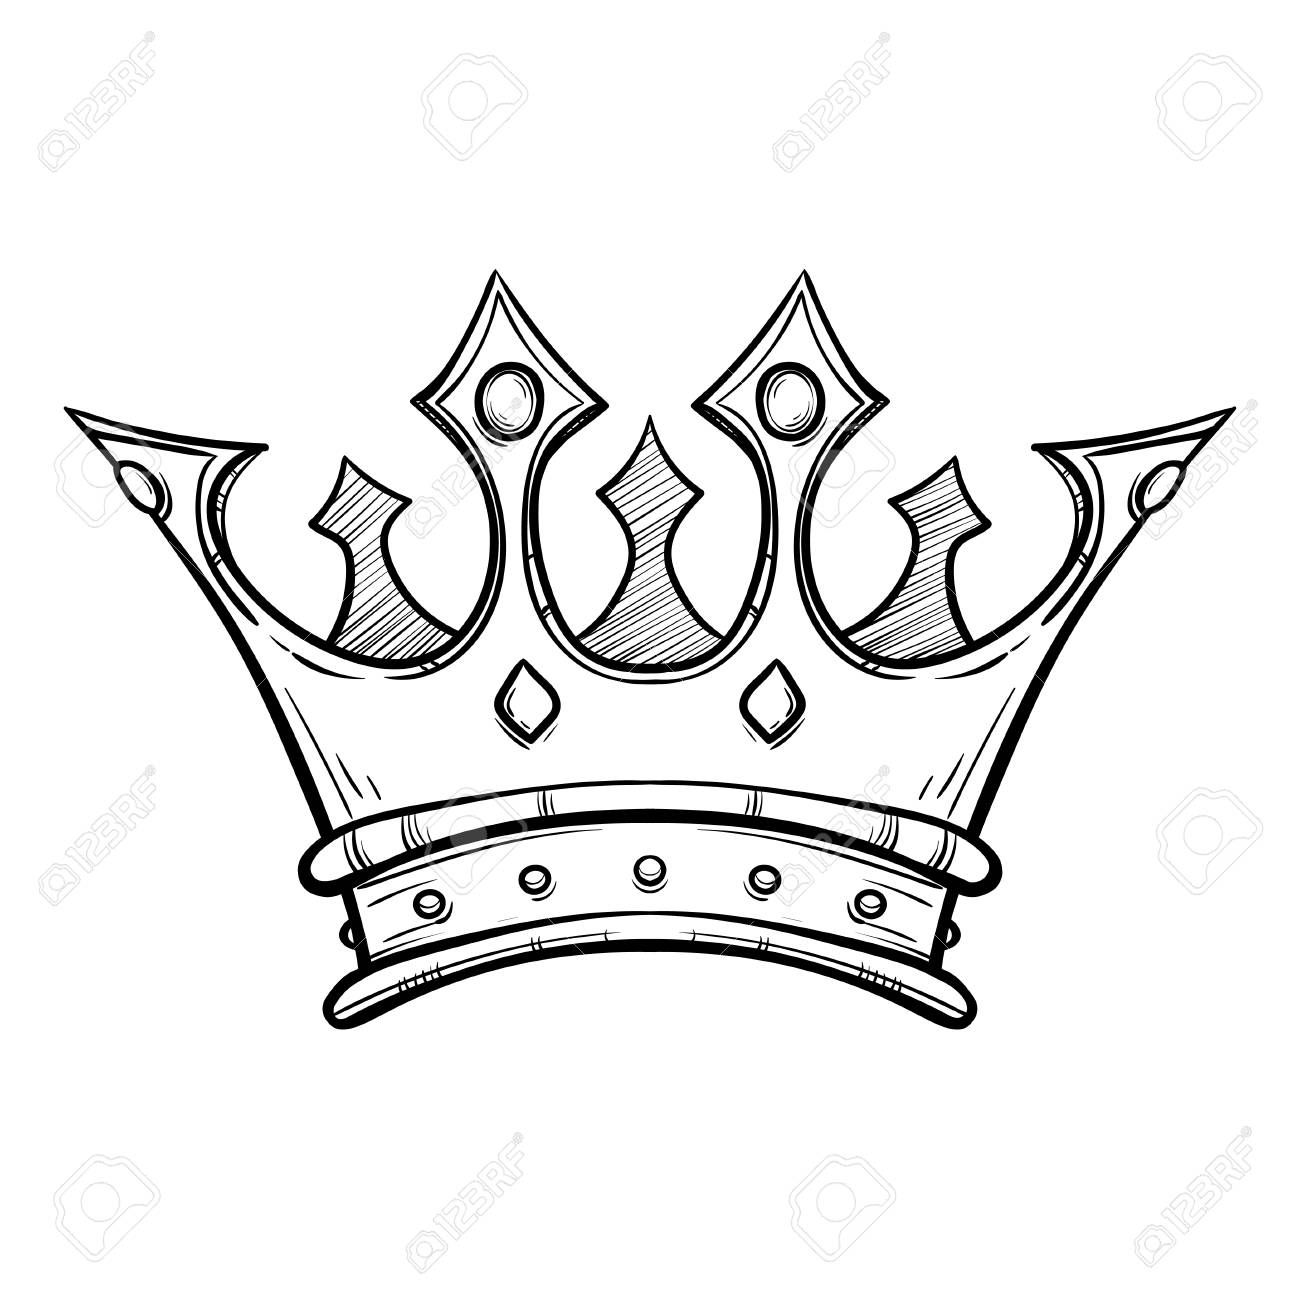 Youth beauty queen being crowned clipart svg royalty free download Stock Vector | Crown | Crown tattoo design, Tattoo drawings ... svg royalty free download